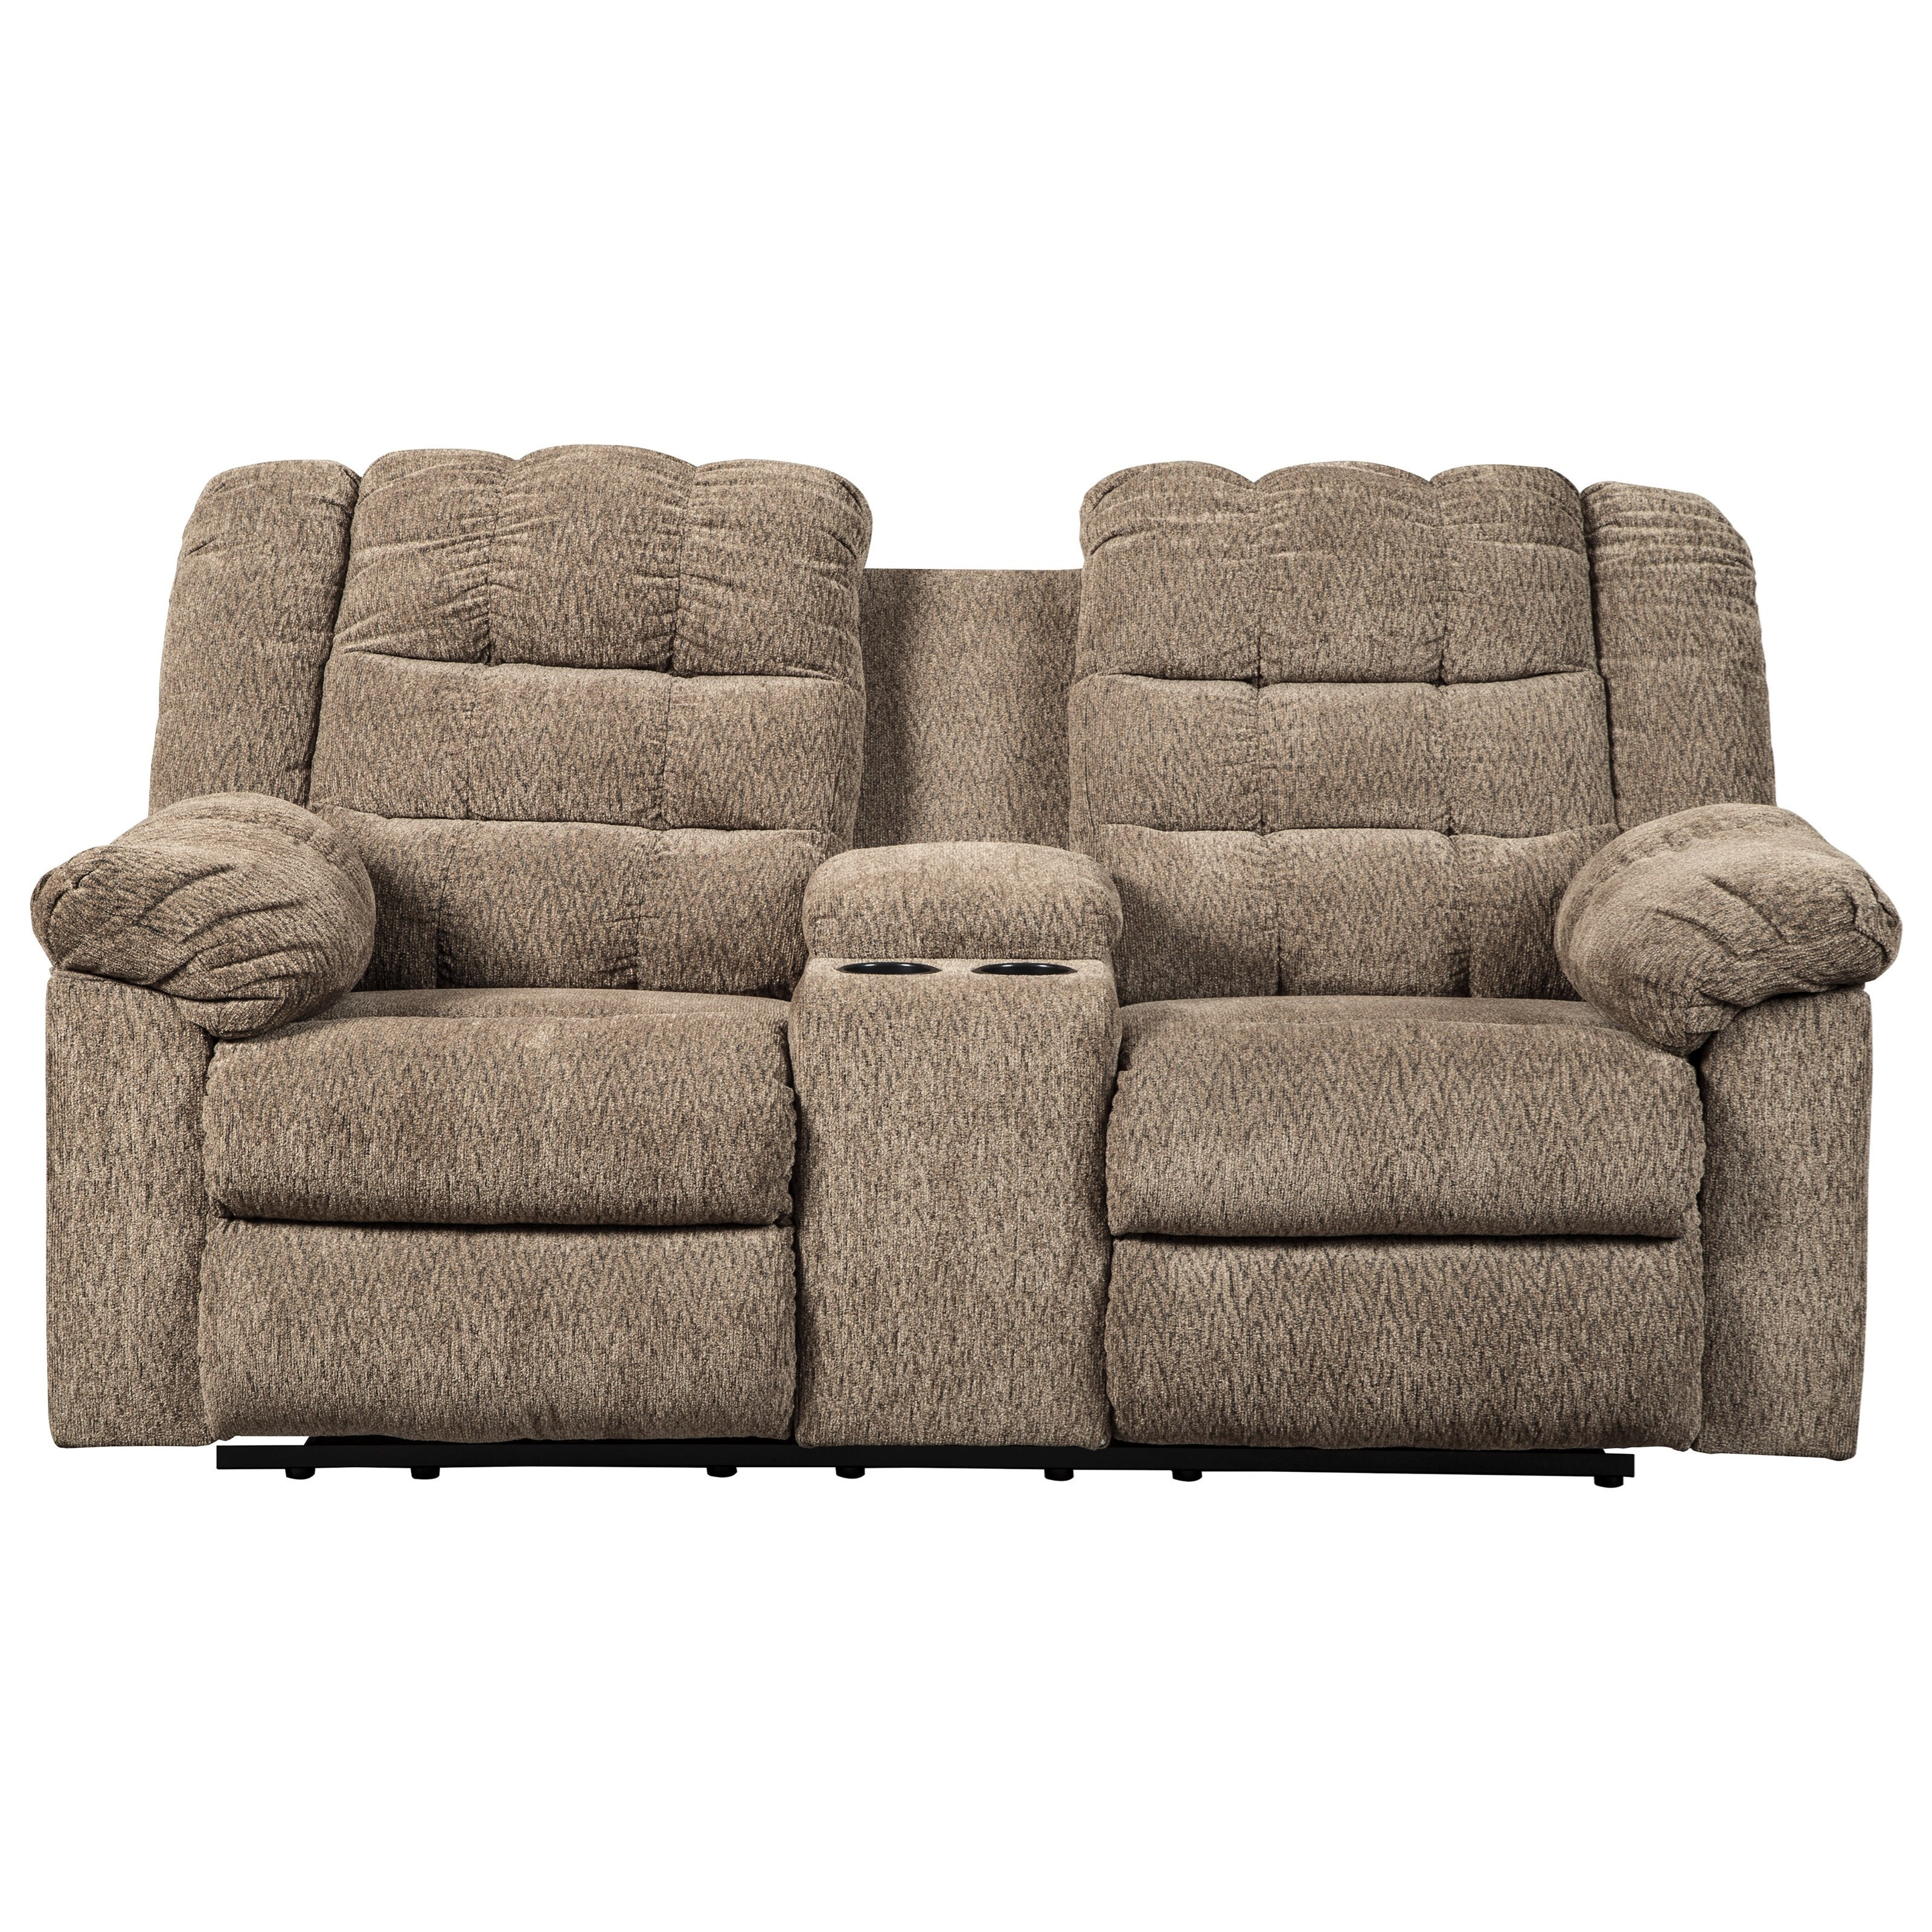 Picture of: Signature Design By Ashley Workhorse Casual Double Reclining Loveseat W Console 2 Cup Holders Royal Furniture Reclining Loveseats